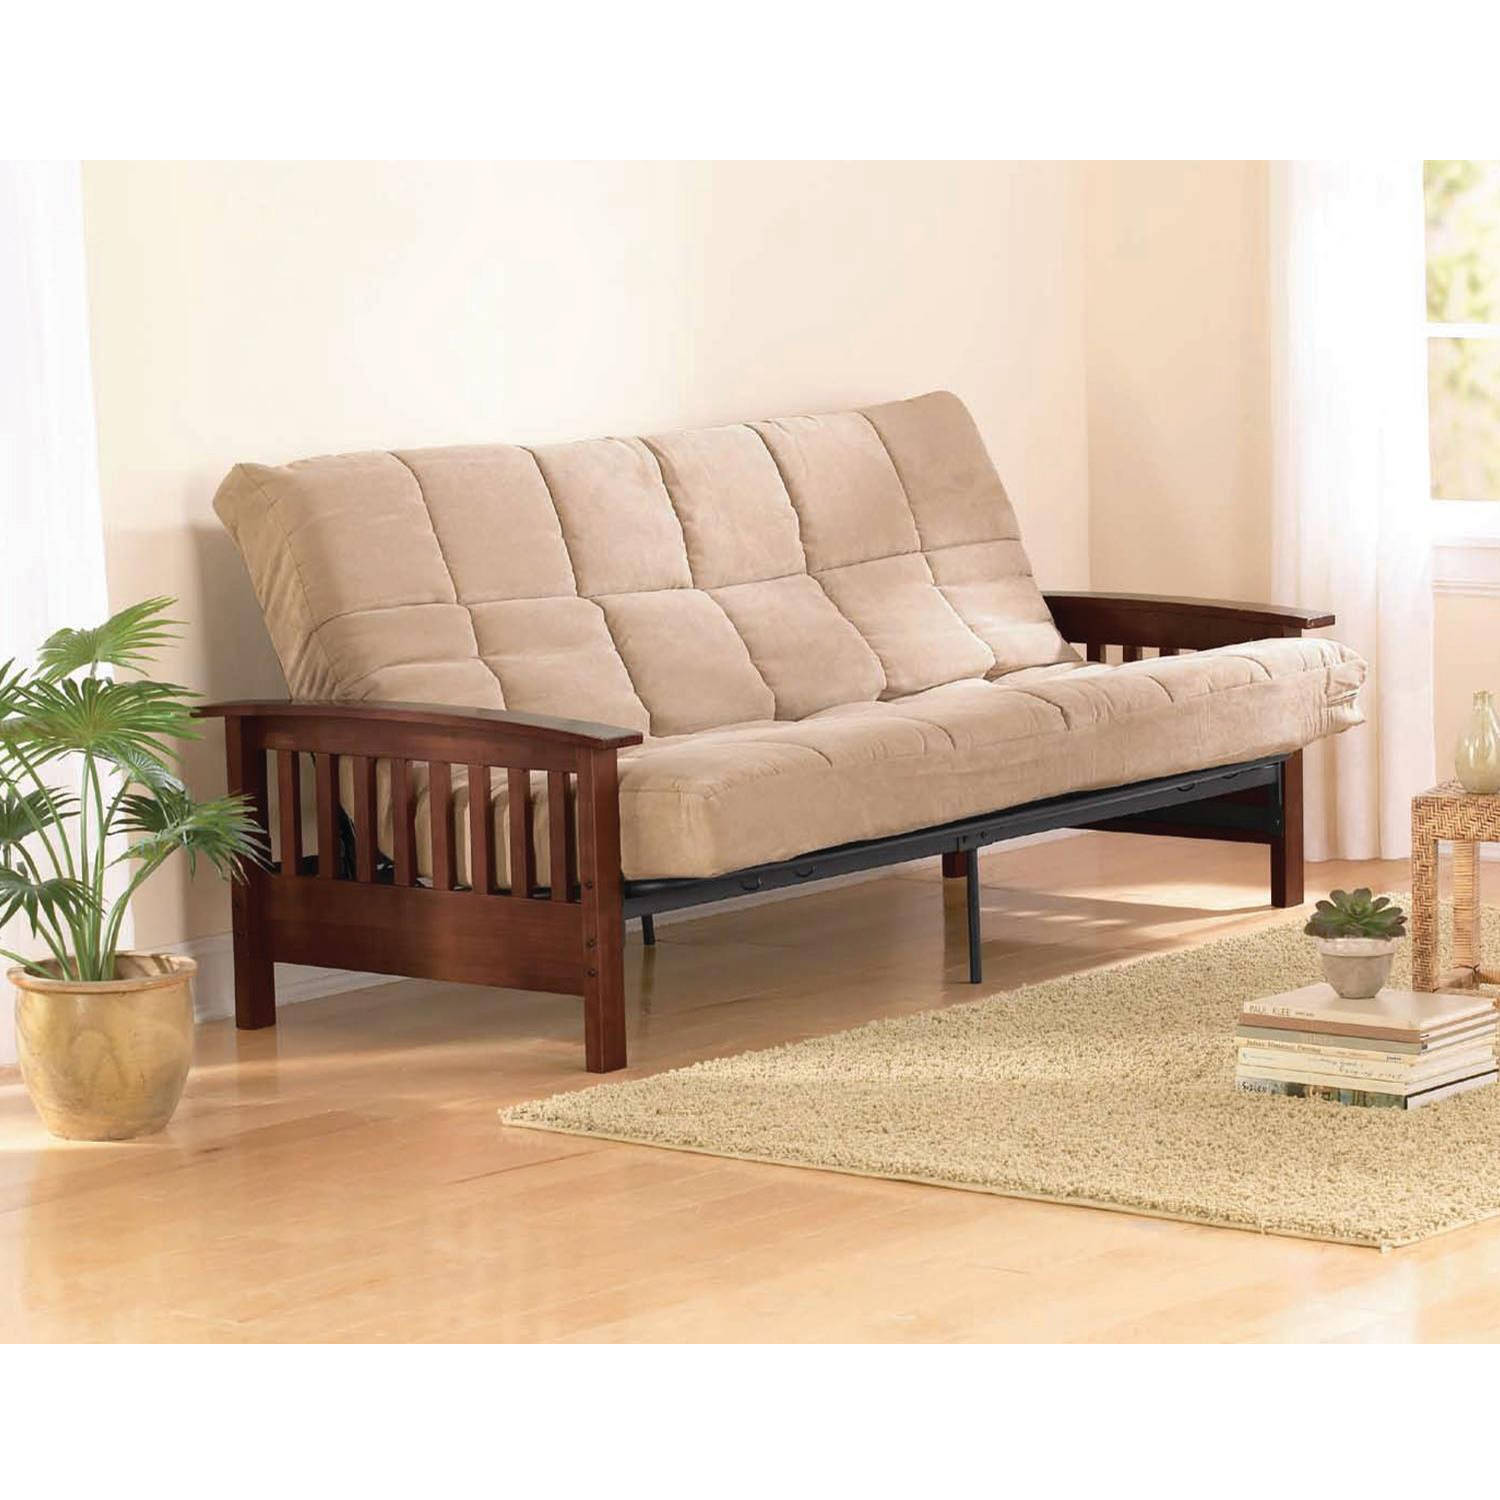 Better Homes and Gardens Neo Mission Futon, Brown